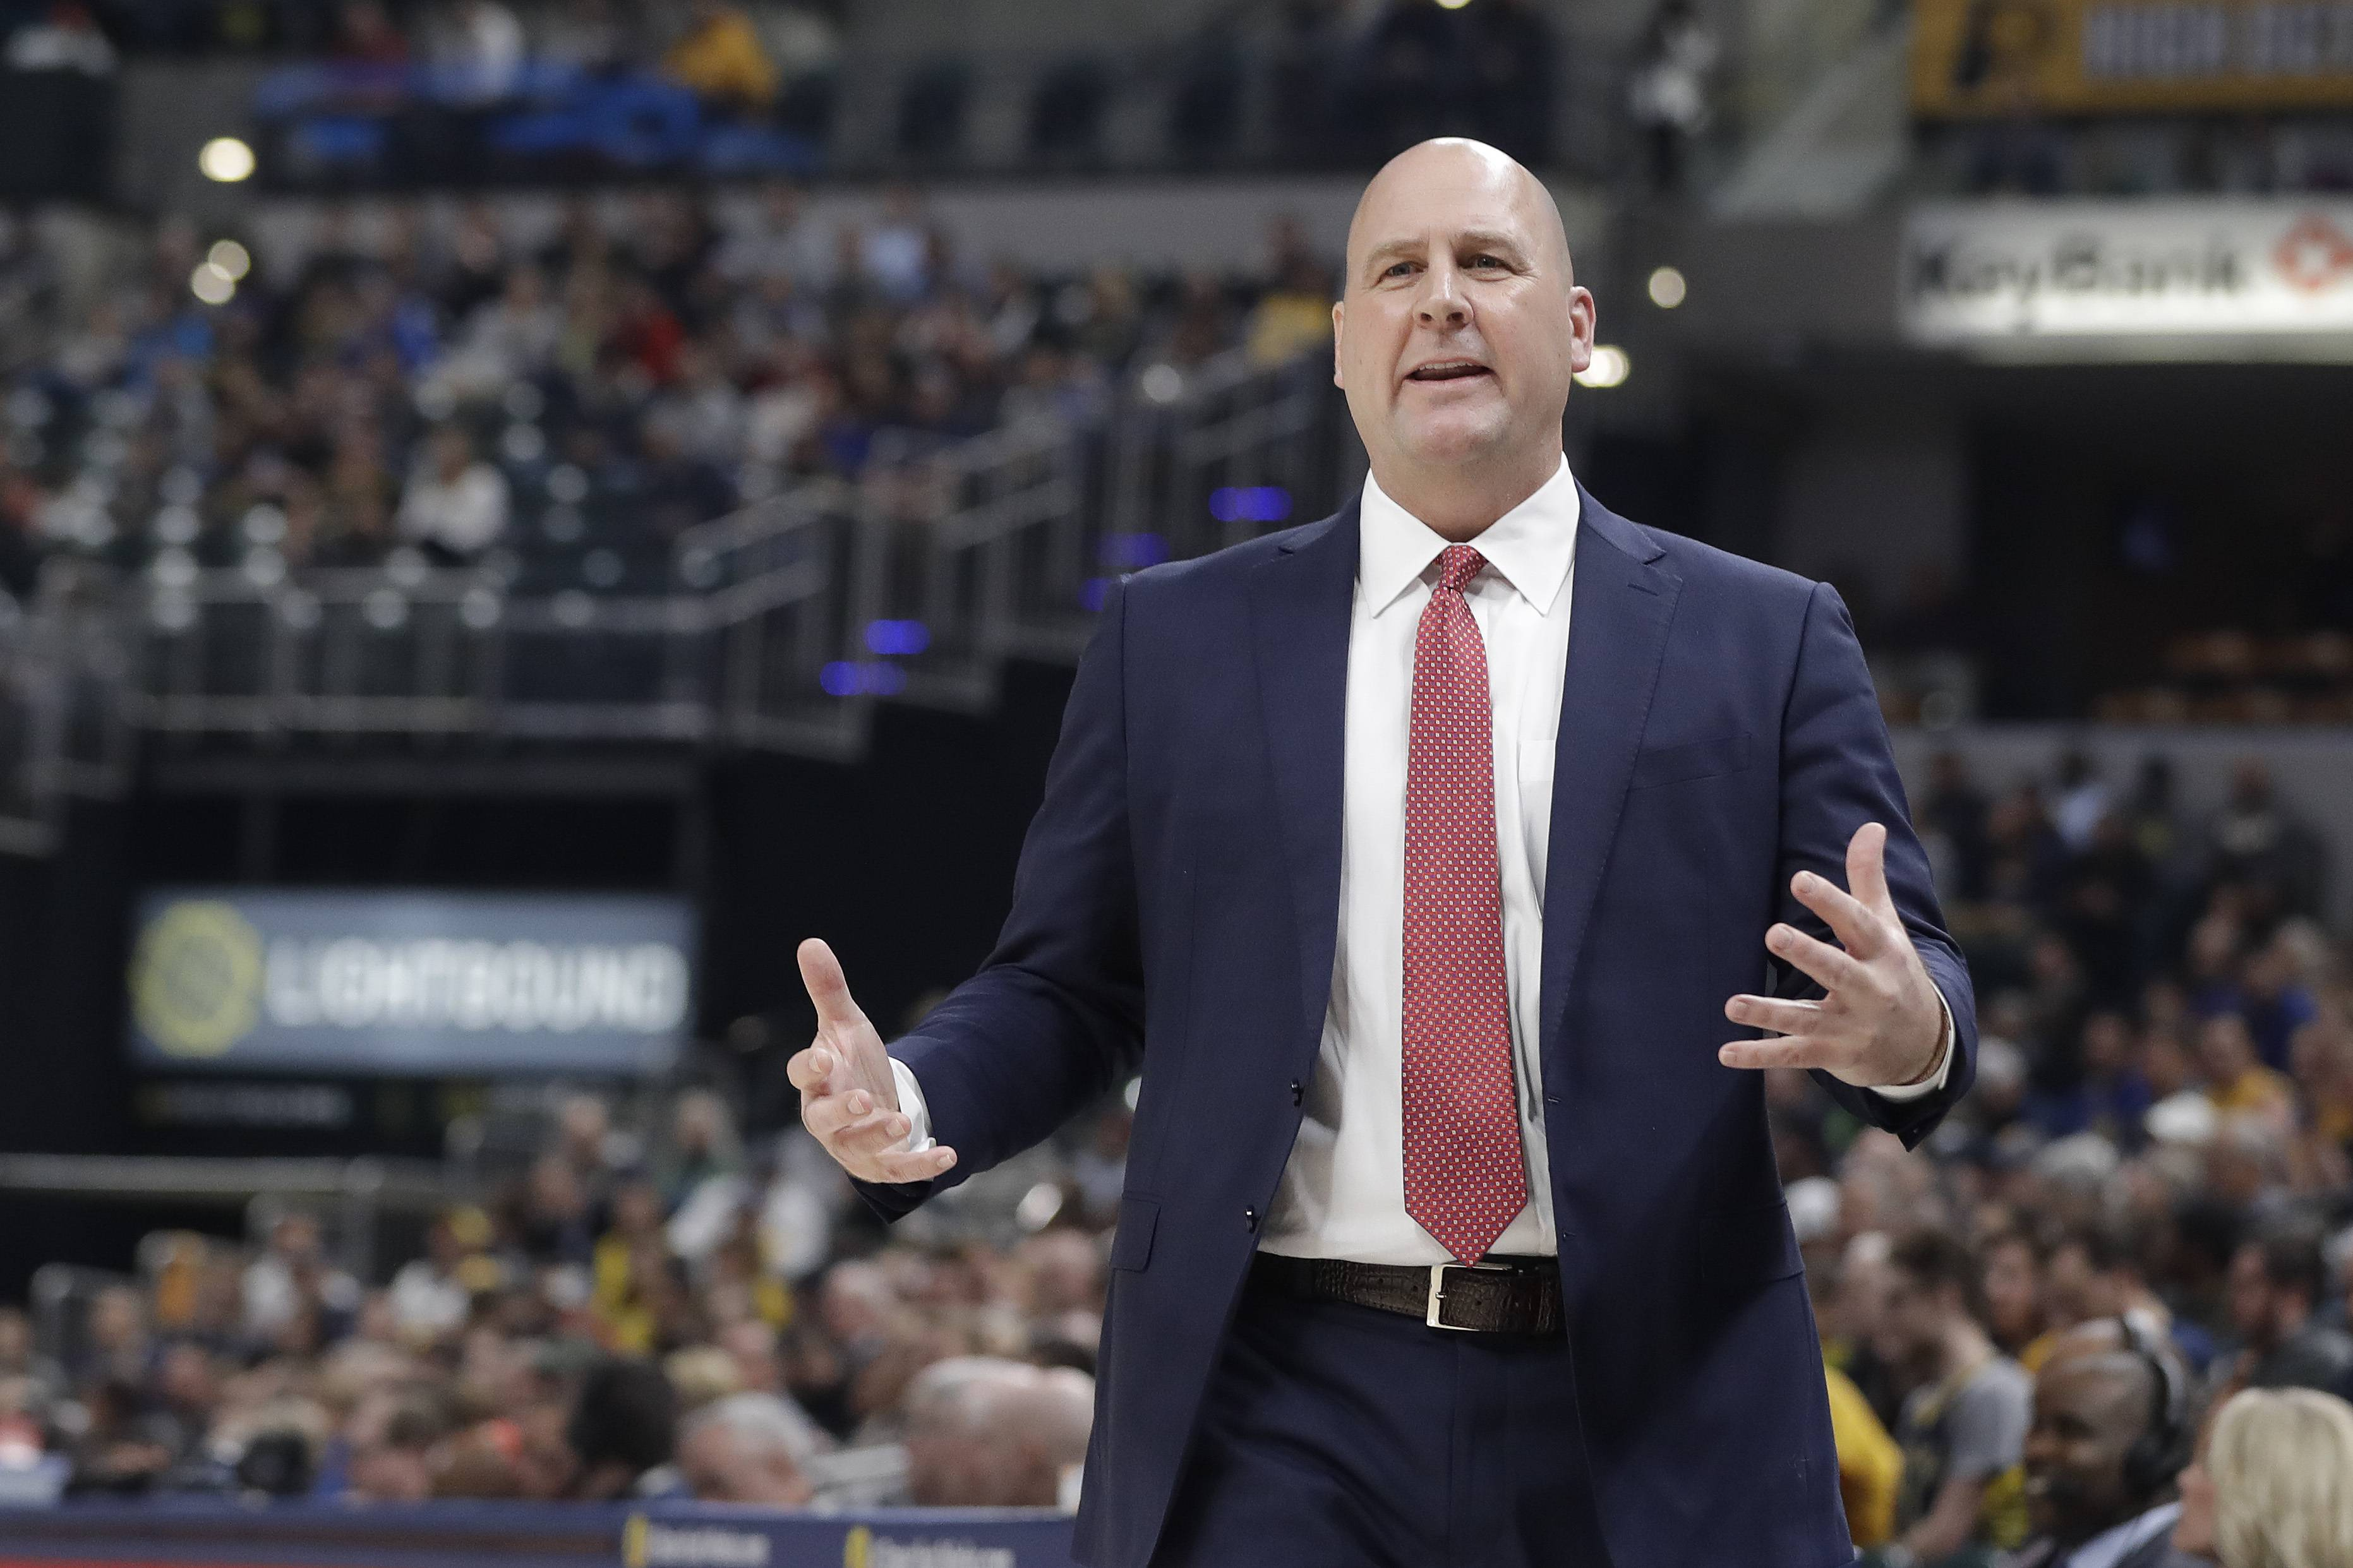 Boylen slows the pace in debut, but Chicago Bulls lose to Indiana